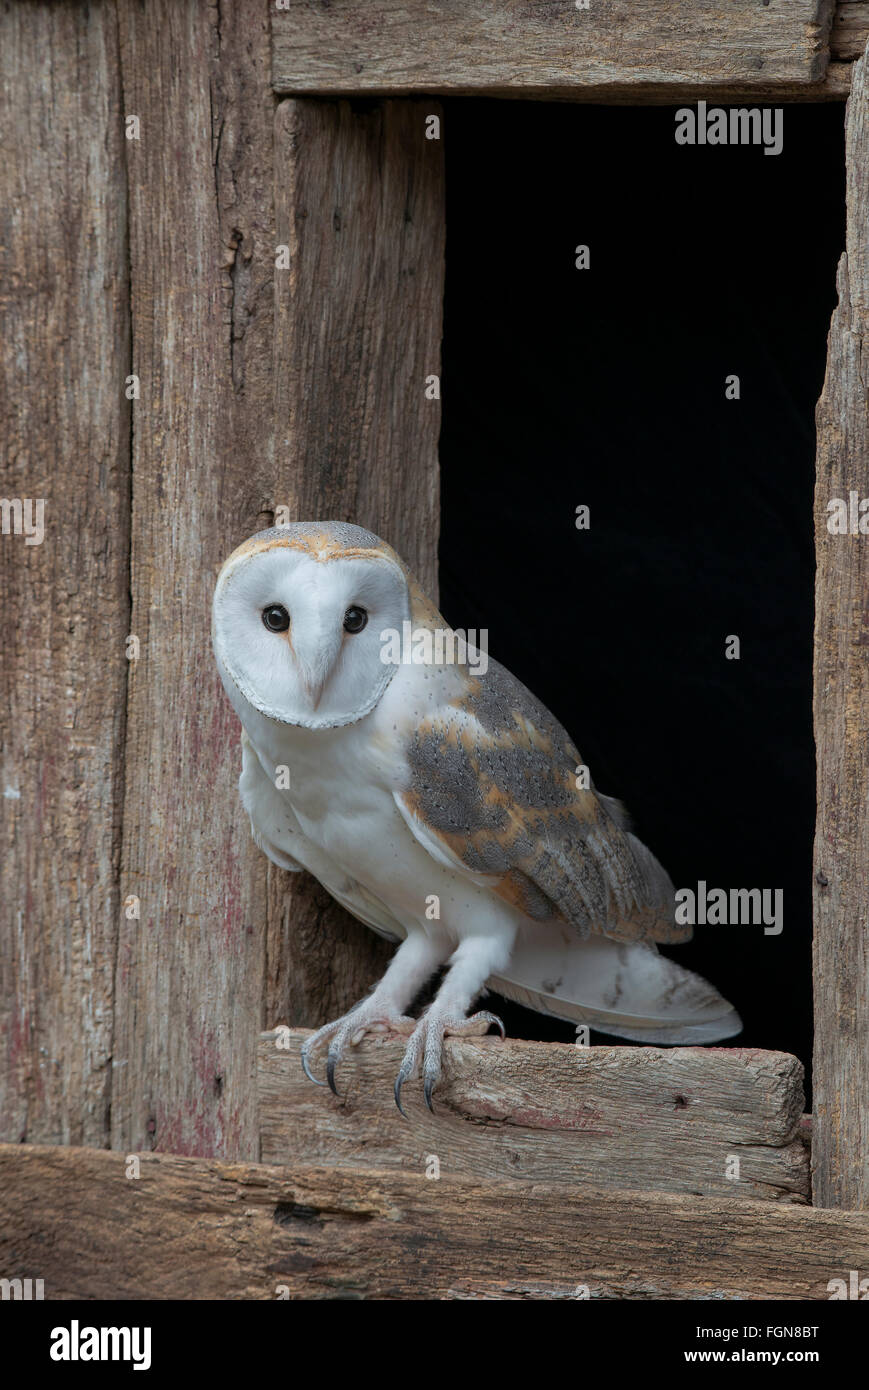 Barn owl (Tyto alba) sitting on barn window sill, Eastern USA - Stock Image